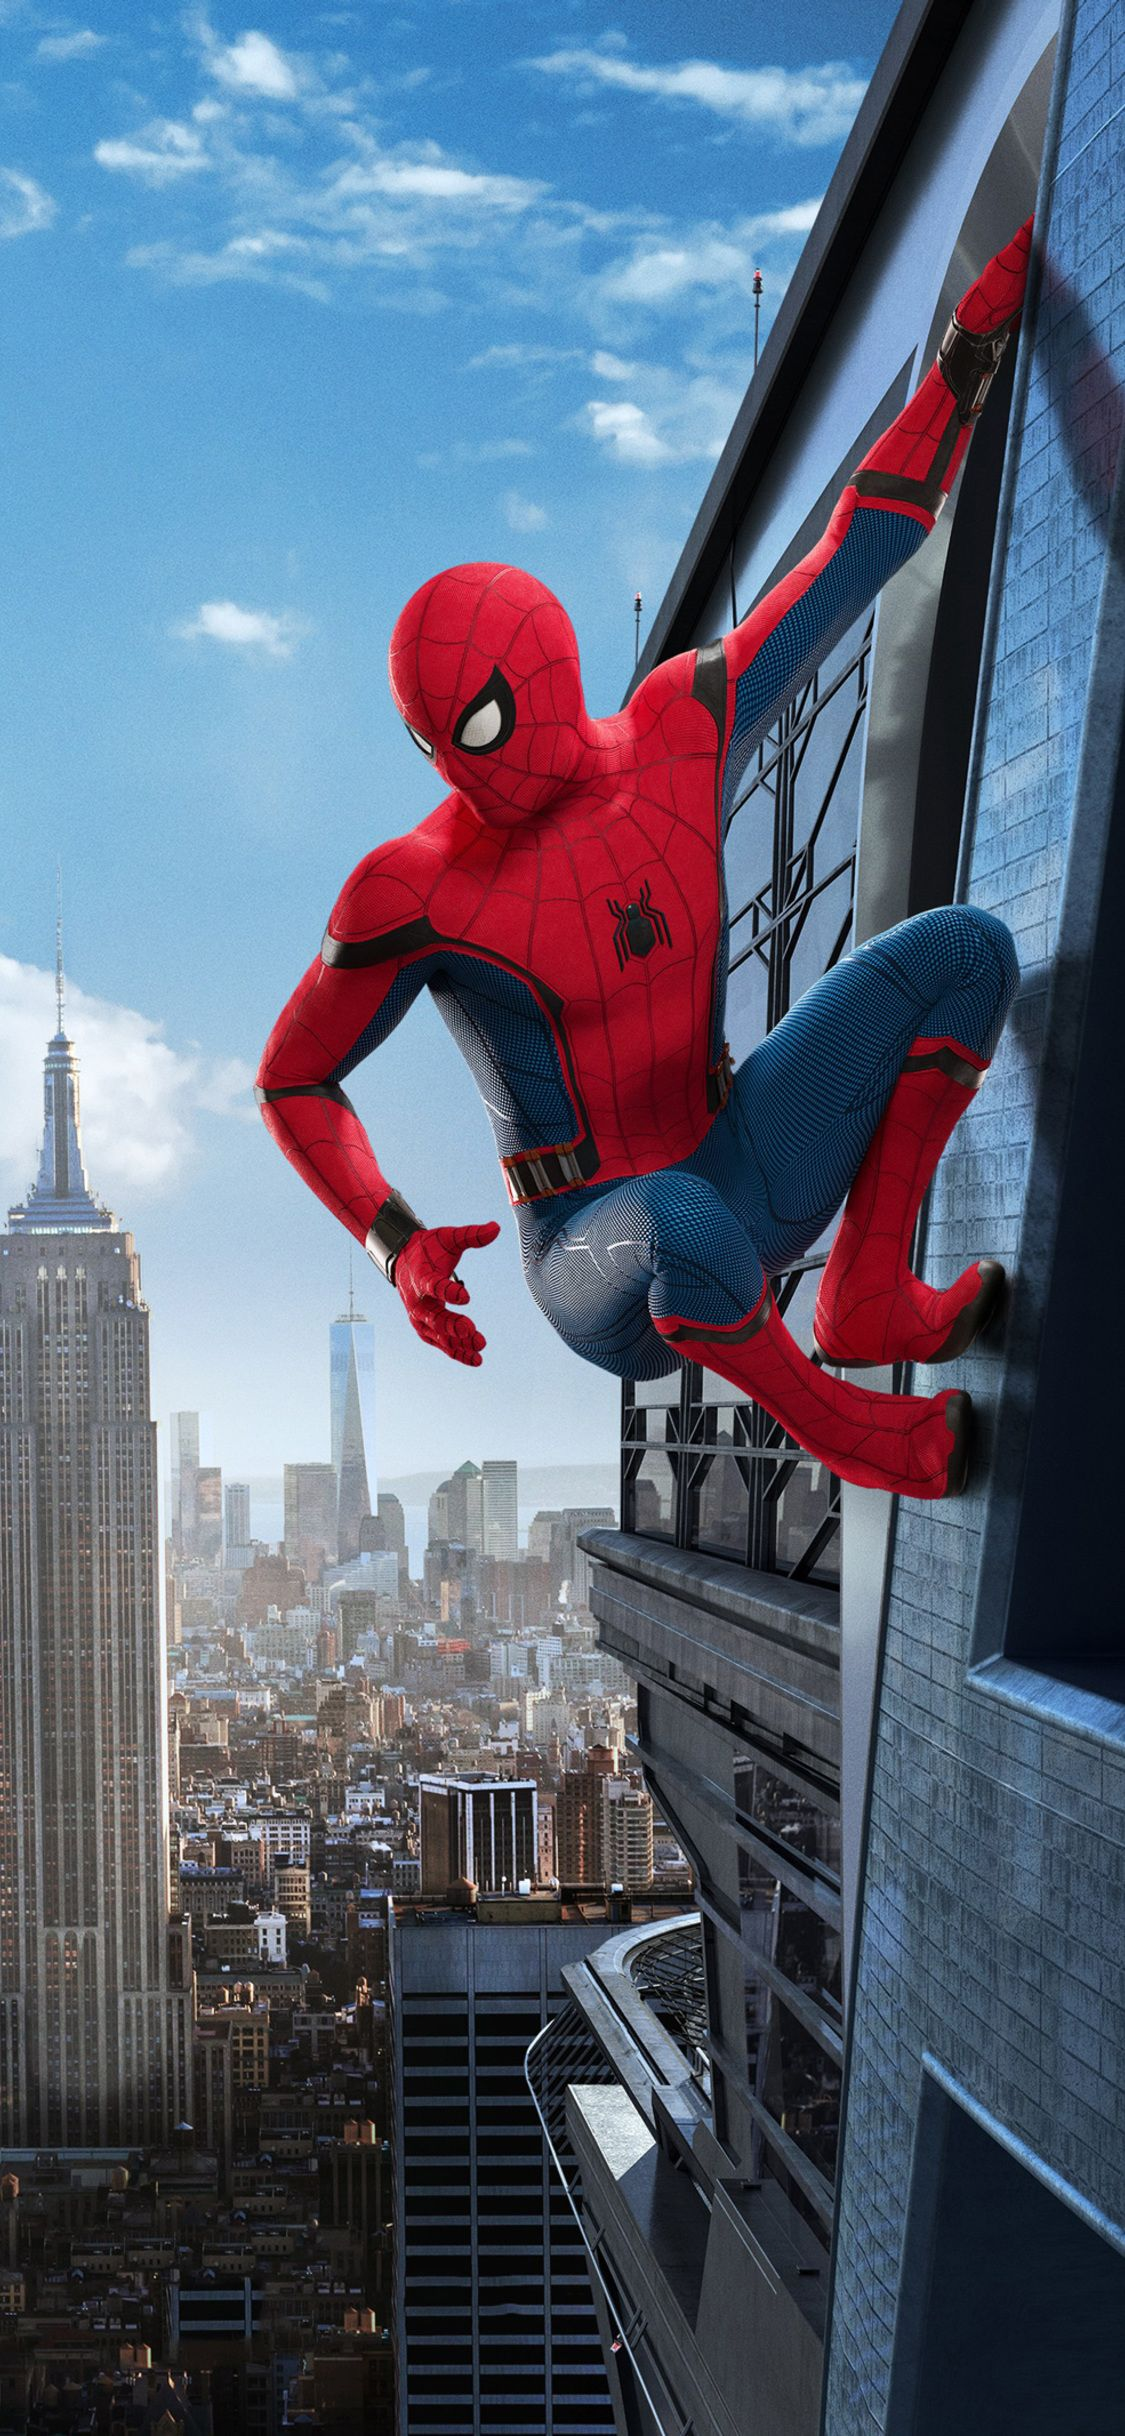 1125x2436 Spiderman Homecoming Iphone Xs Iphone 10 Iphone X Hd 4k Wallpapers Images Backgrounds Photos And P Marvel Comics Wallpaper Spiderman Man Wallpaper